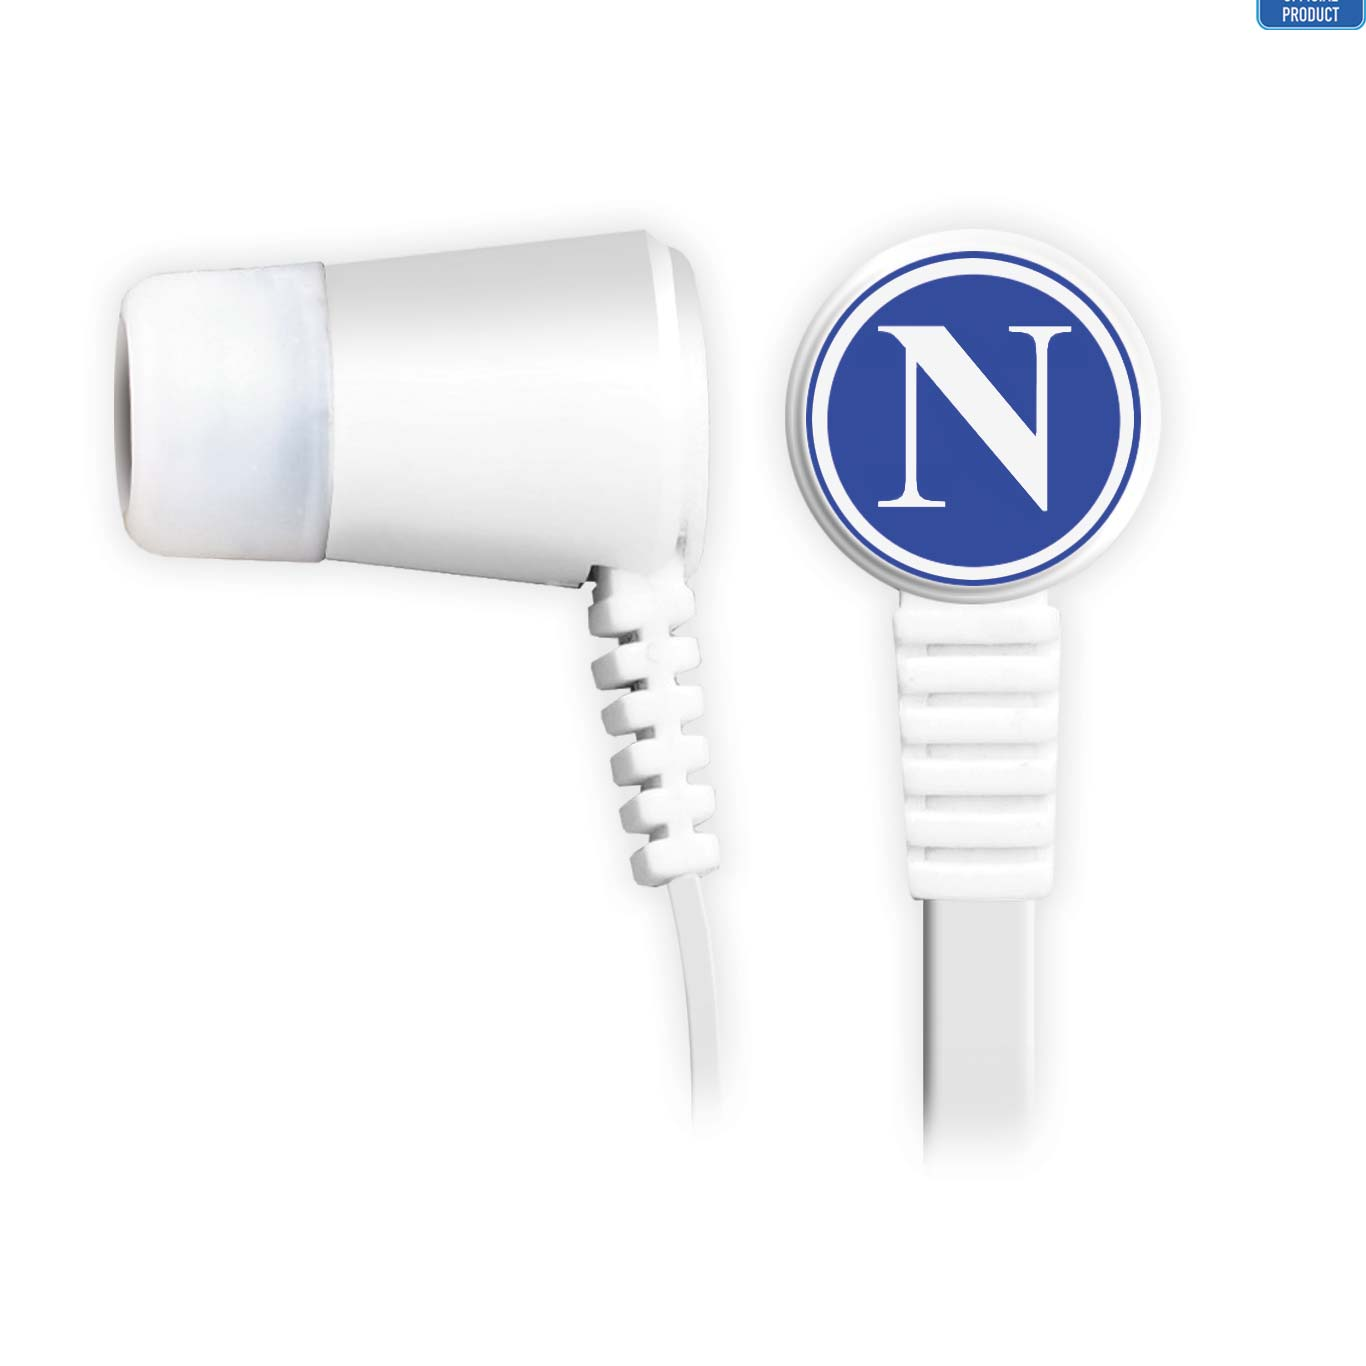 SSC Napoli Earbuds with remote and mic